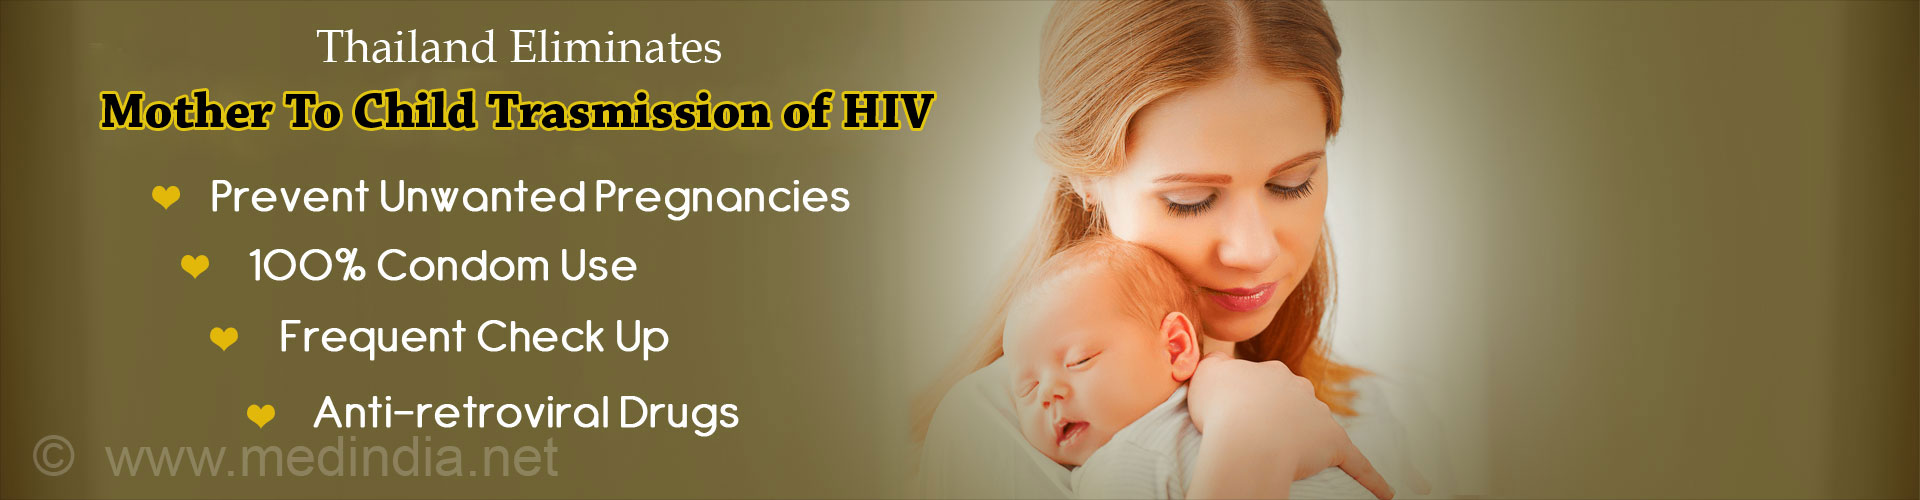 Thailand Successfully Eliminates Mother to Child Transmission of HIV